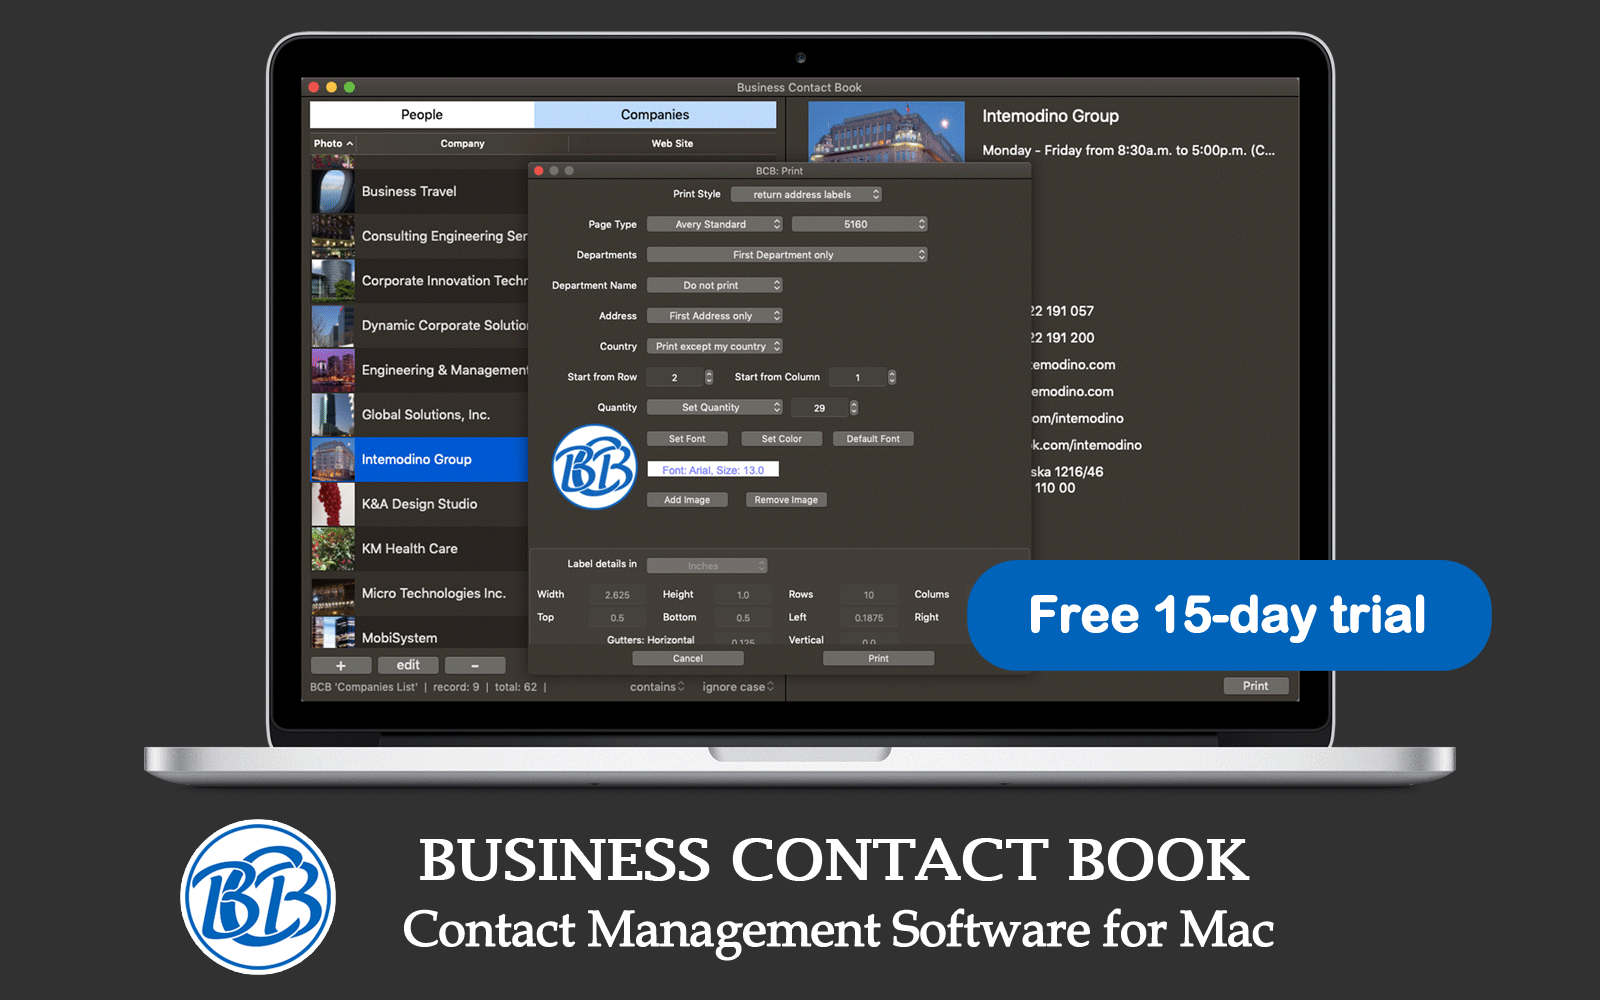 Business Contact Book - New Way in Contact Management